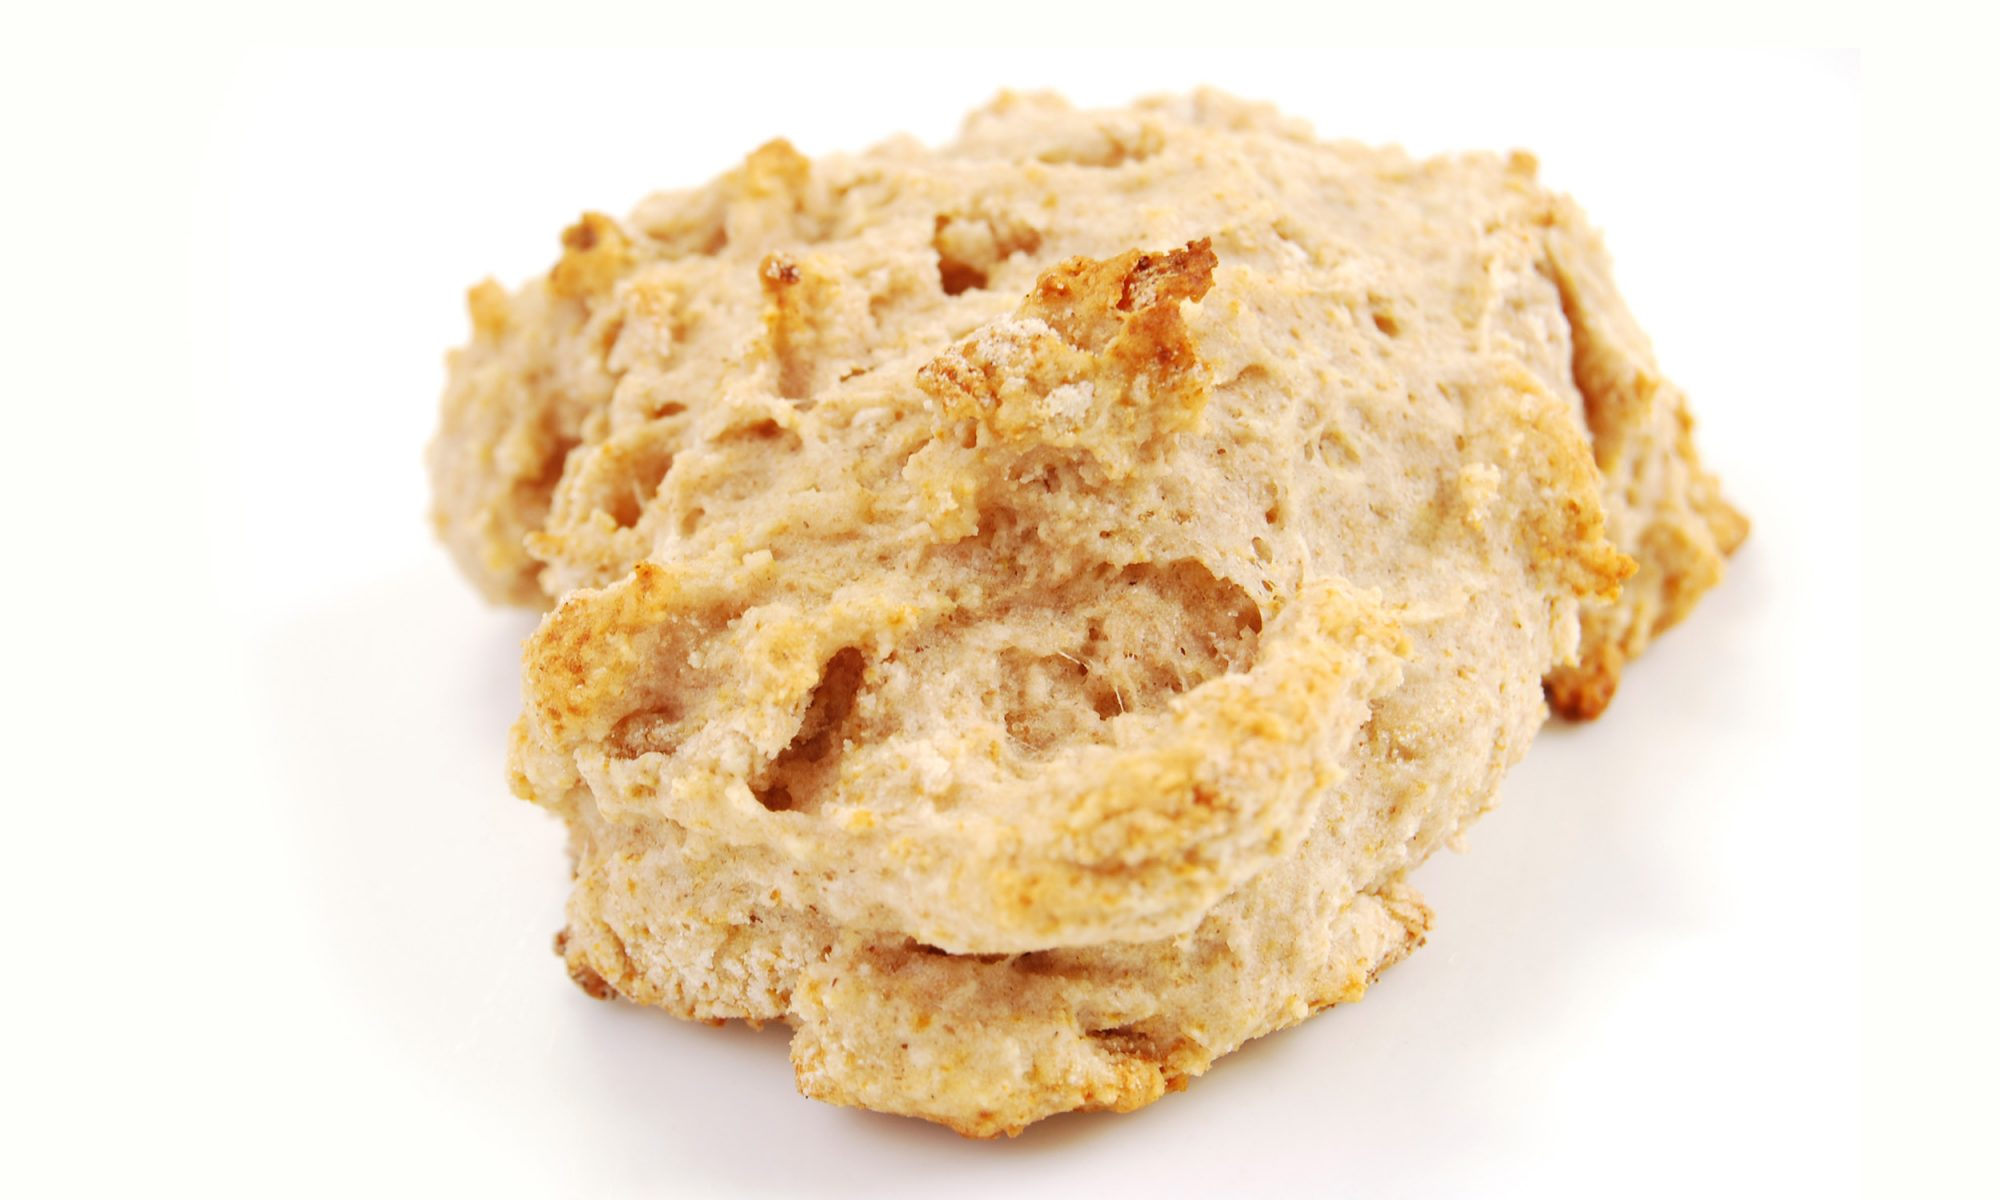 EC: Drop What You're Doing and Make These Super-Easy Biscuits